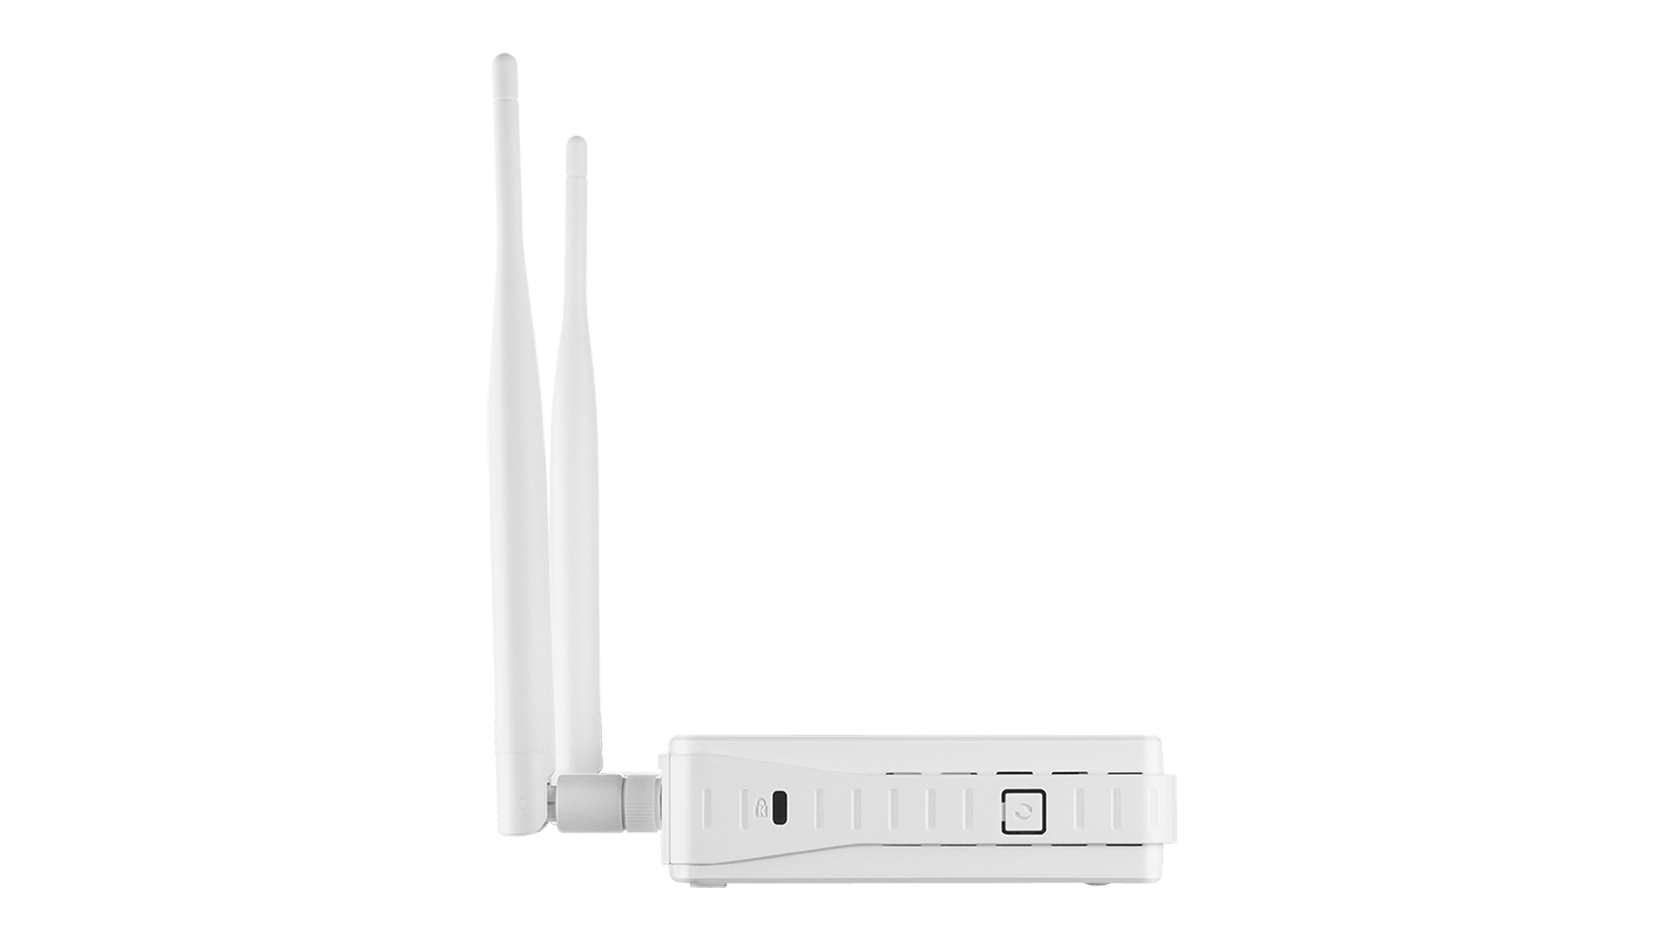 #Wireless N300 Access Point